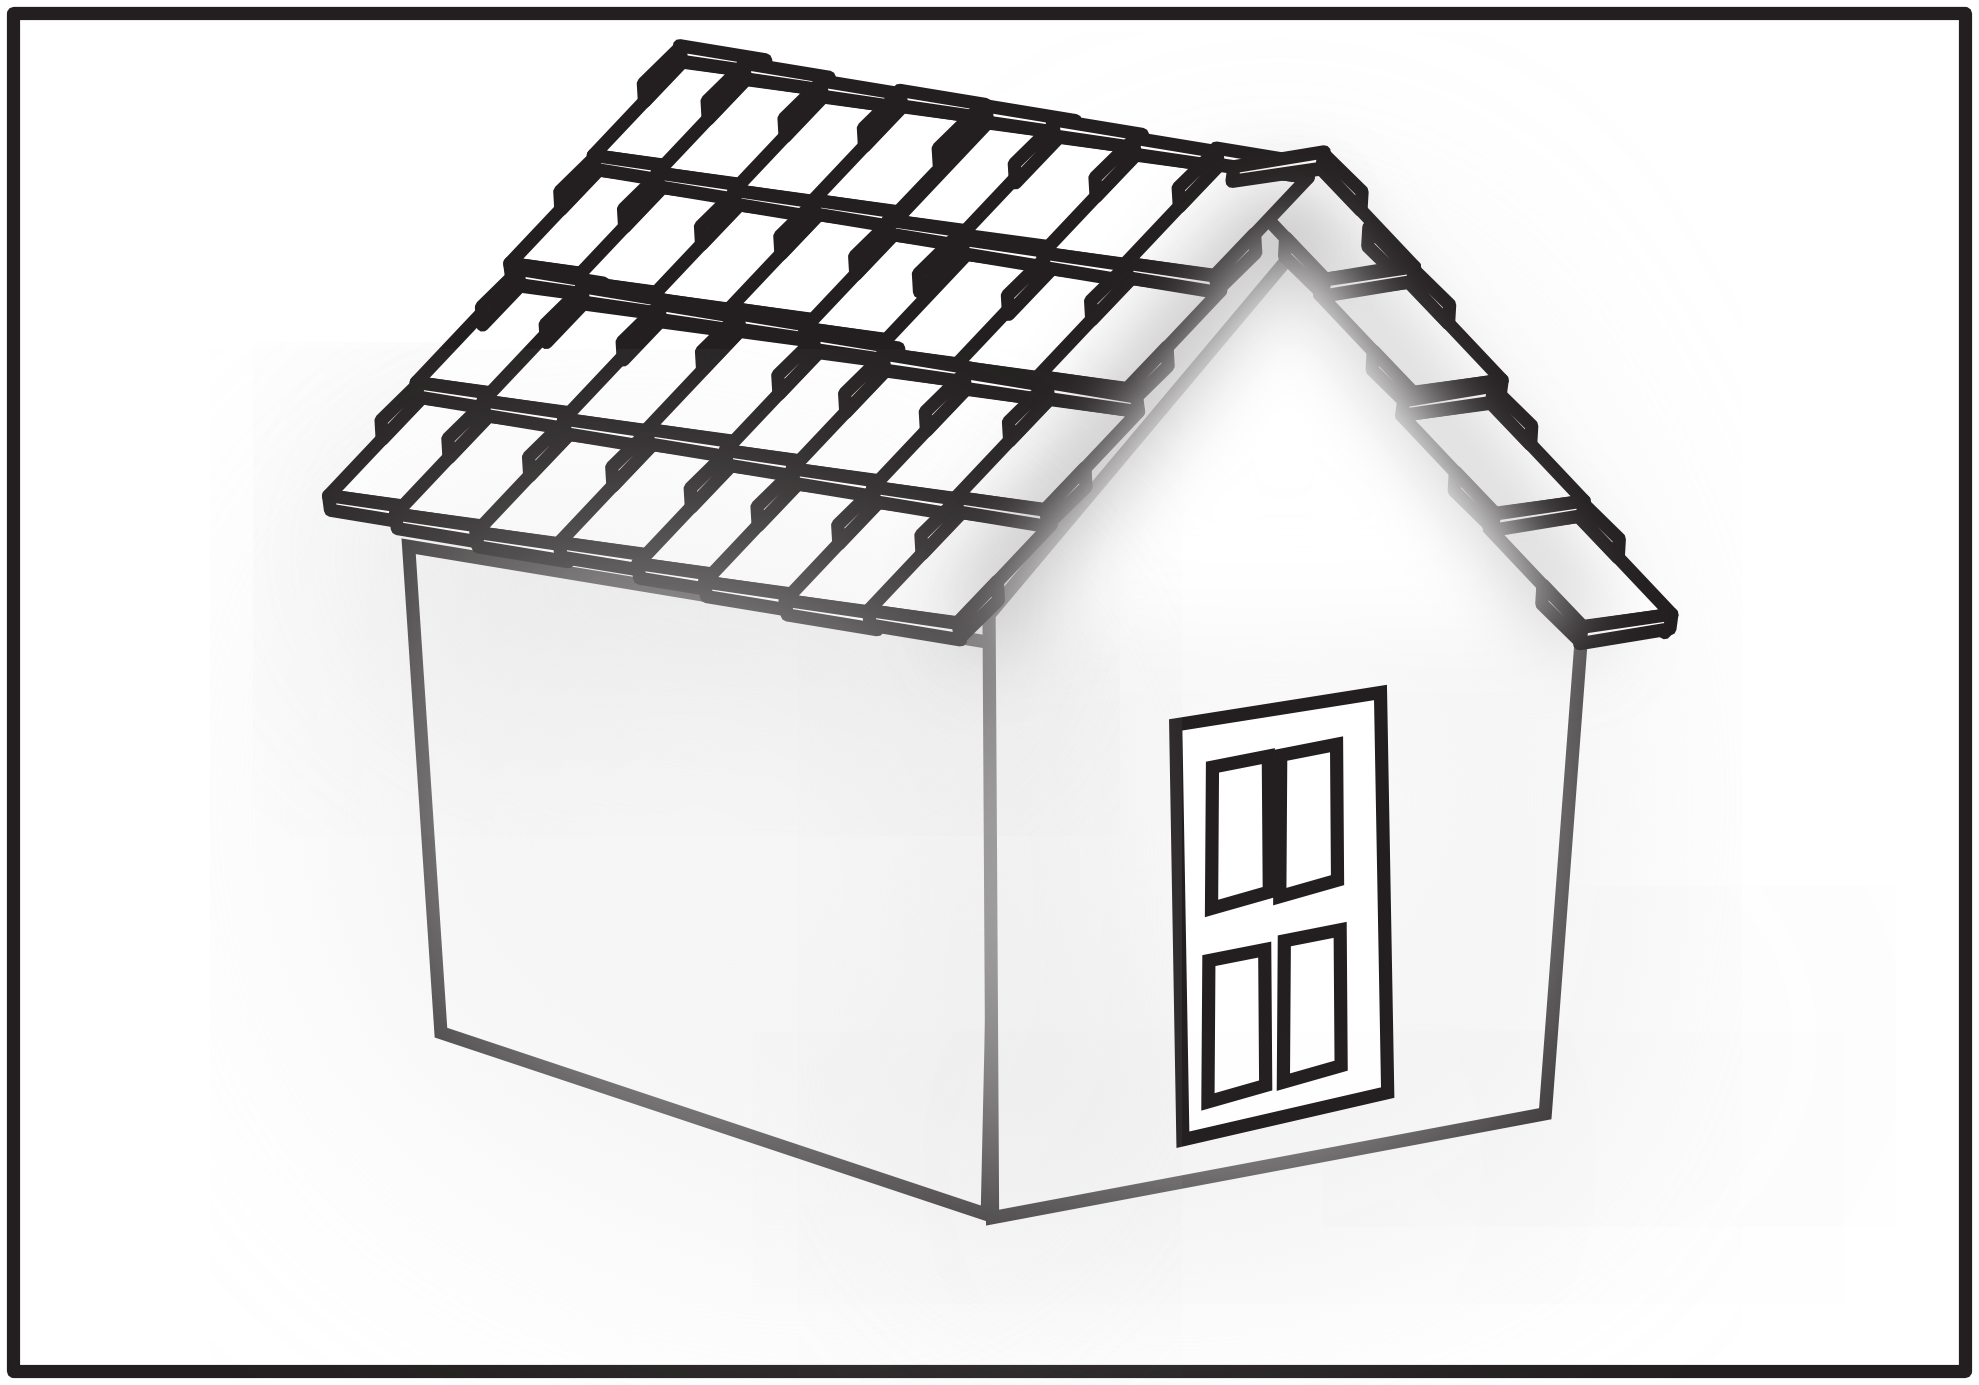 House Tiled Roof Netalloy Black White Line Art Hunky Dory Svg